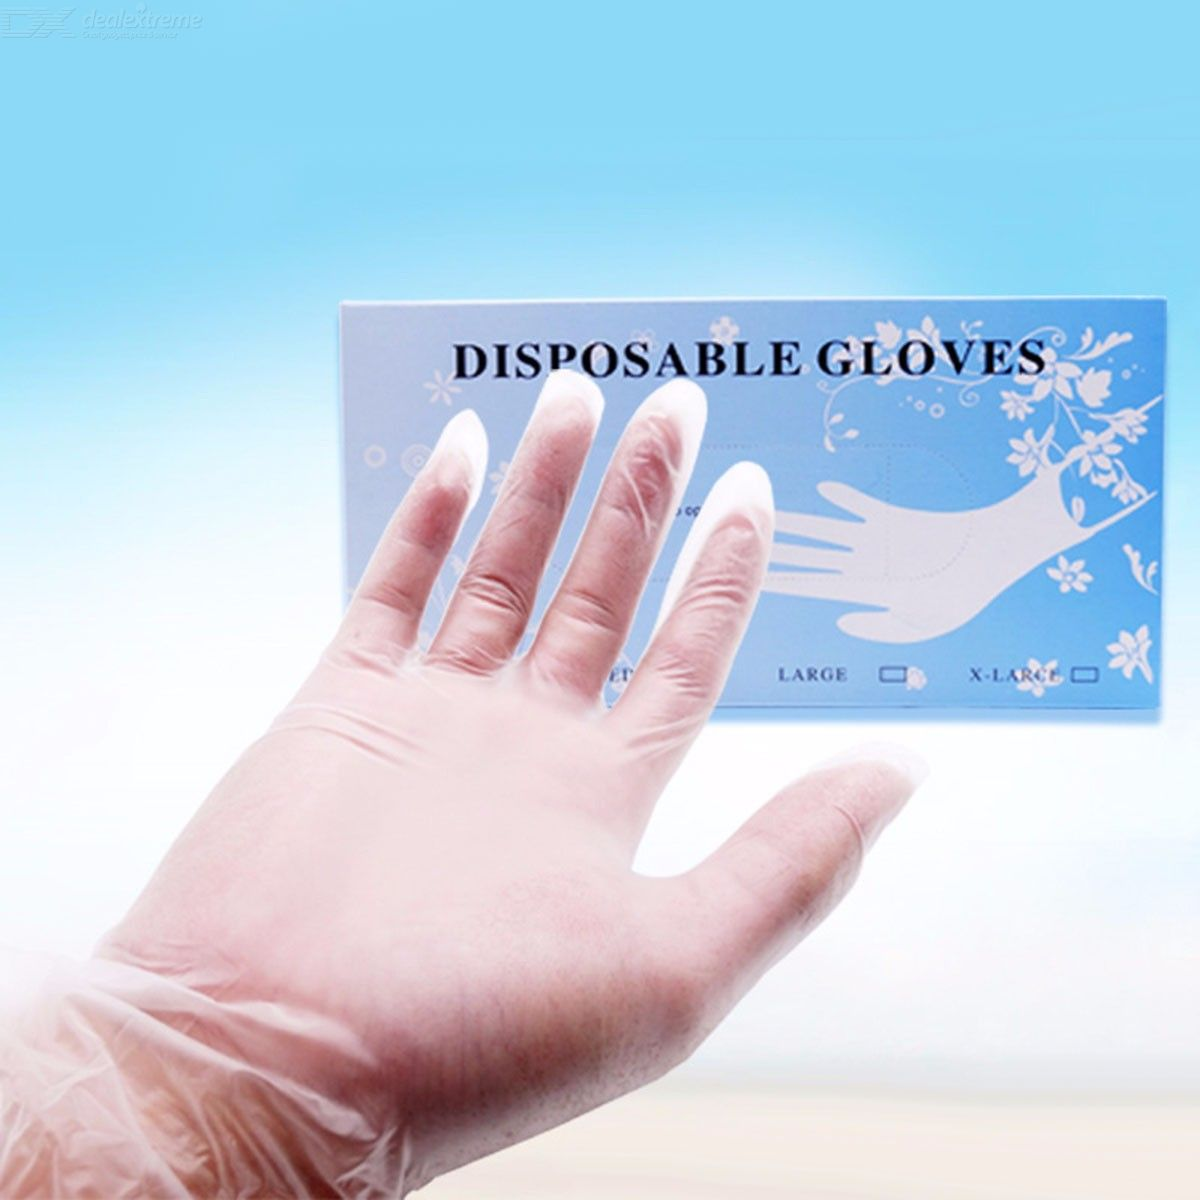 50Pcs Disposable Gloves For Housework Cleaning Kitchen BBQ Skin Care, Transparent Free Powder PVC Gloves (S)